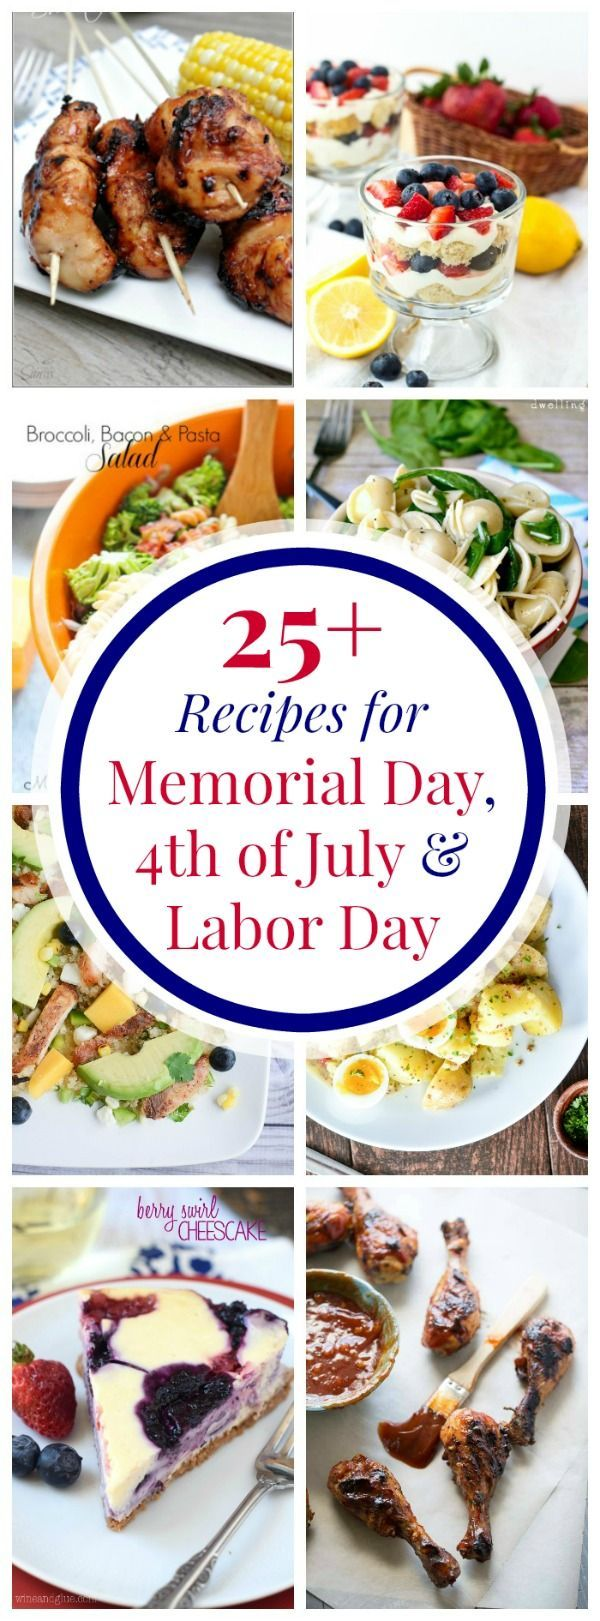 Over 25 Recipes for Memorial Day, 4th of July and Labor Day Parties - grilling recipes, salads, sides dishes, and red, white and blue desserts in this collection of summer party recipes! | cupcakesandkalechips.com